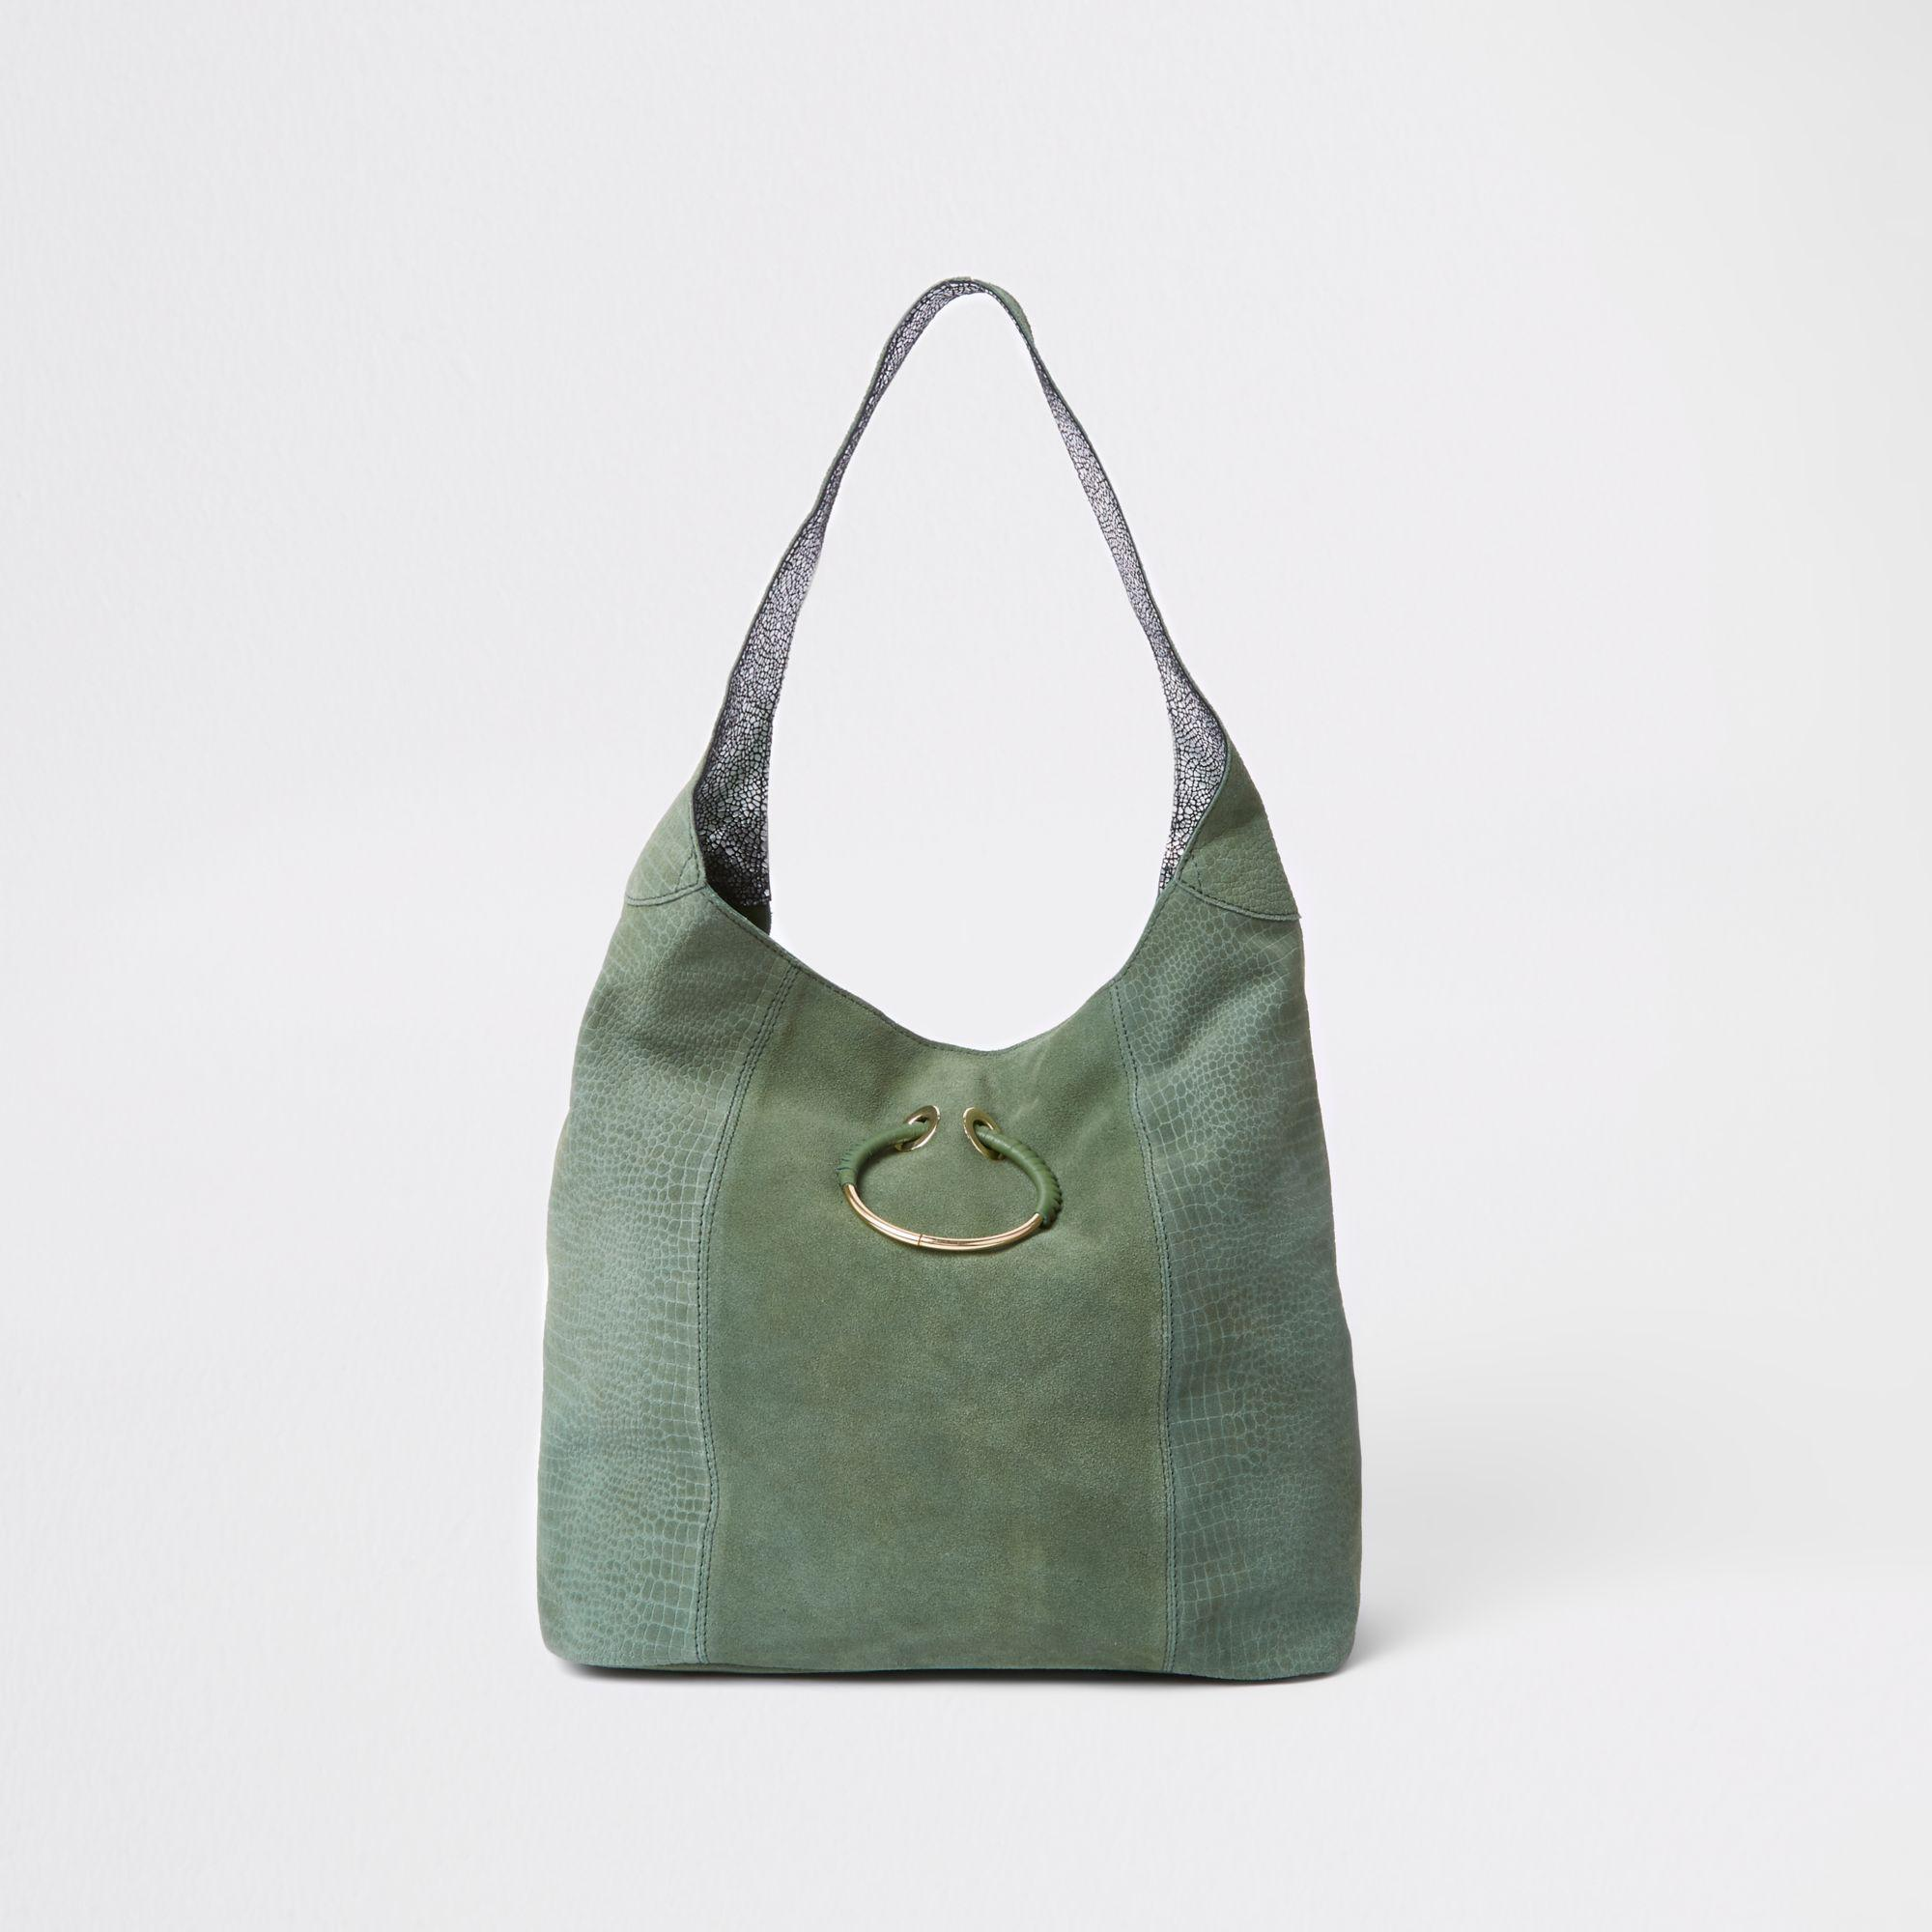 89c25d685 River Island Dark Leather Metal Ring Slouch Bag in Green - Lyst